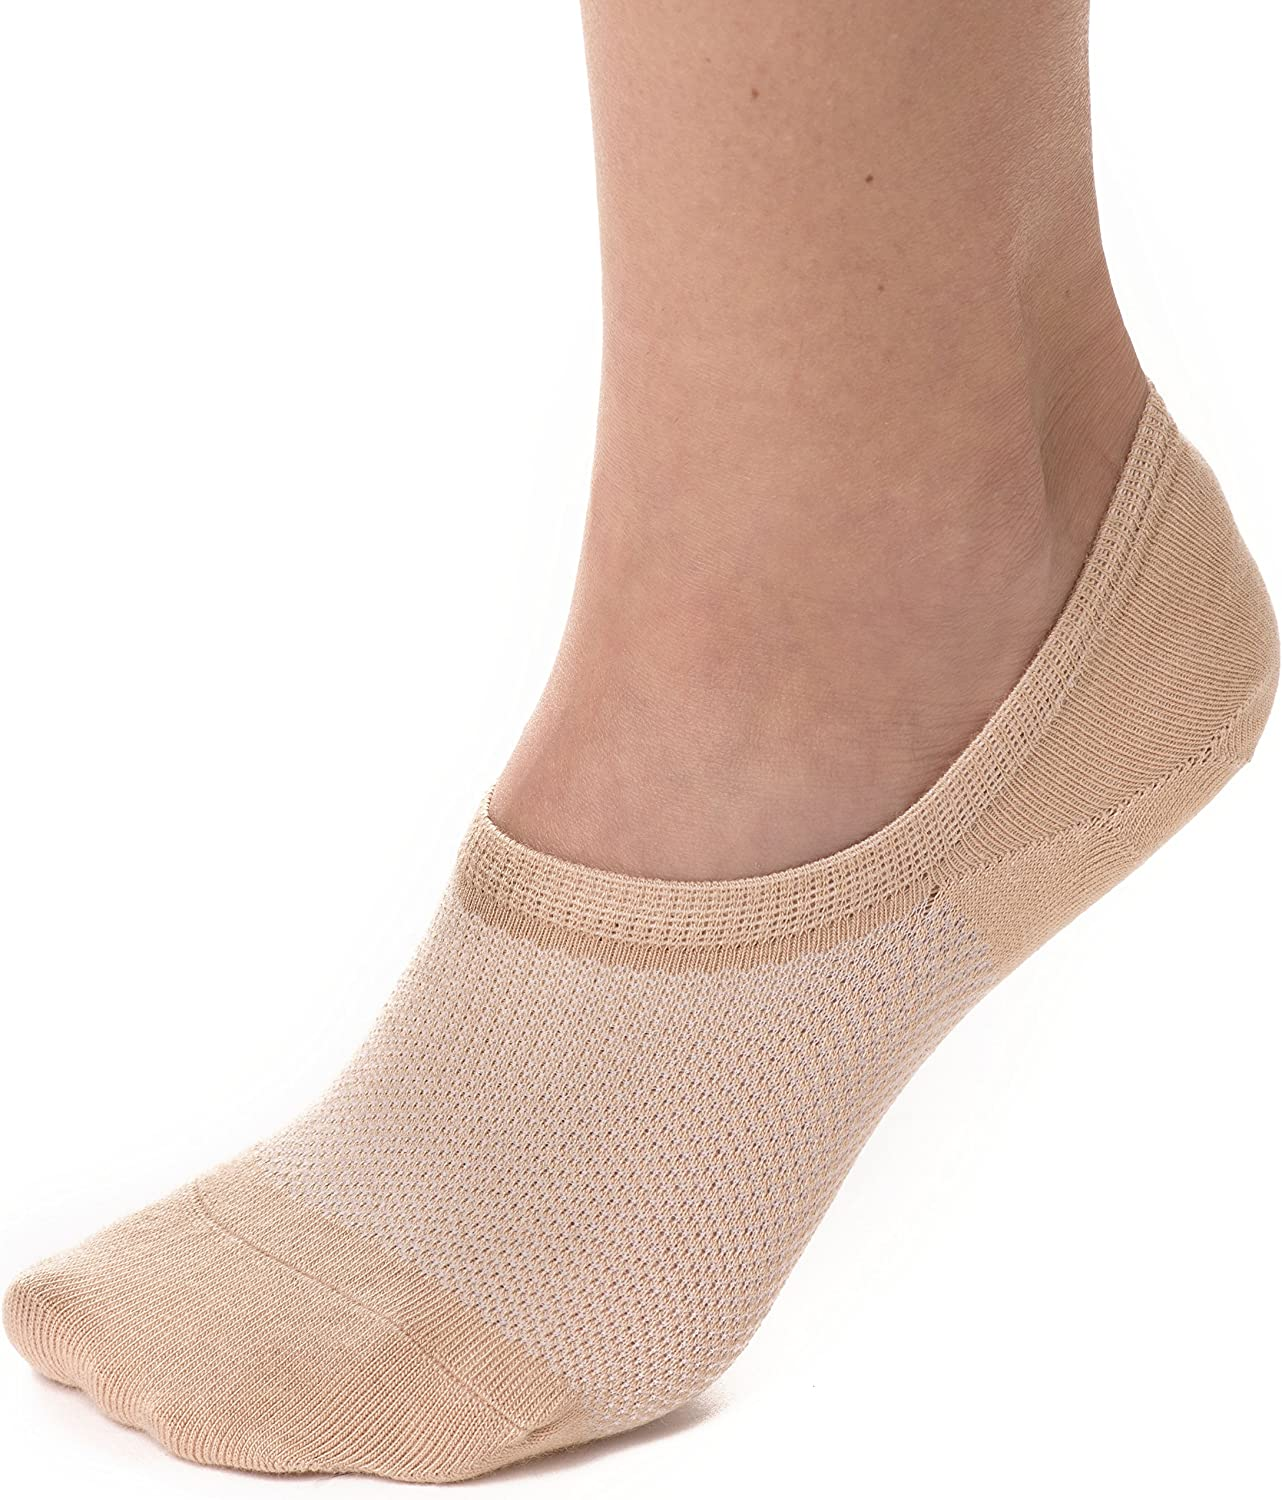 Bambu Women's Premium Bamboo No Show Casual Socks  3 4 pair pack  NonSlip